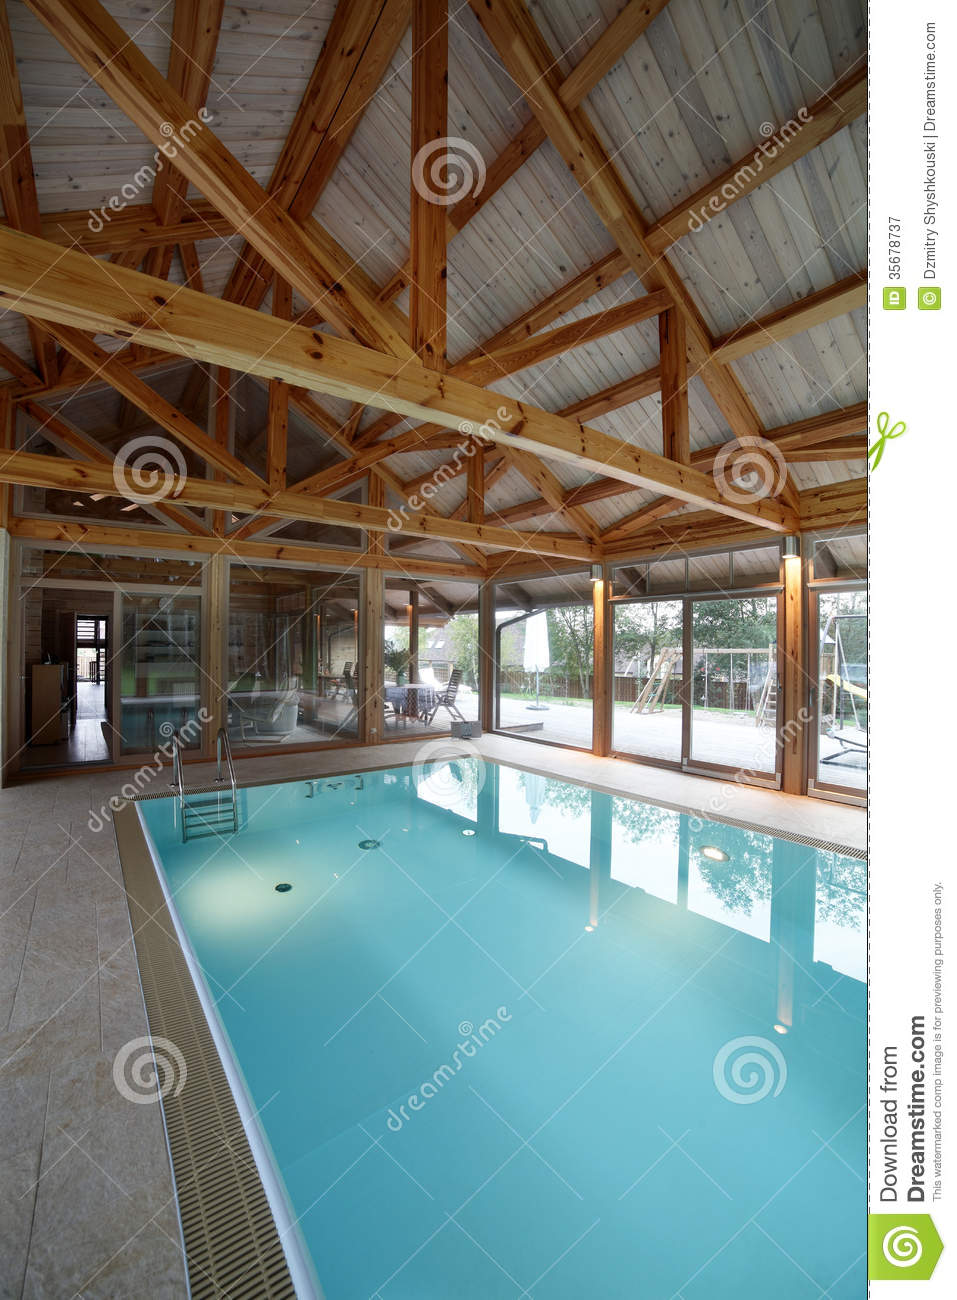 Interior Of Swimming Pool Inside Of House Stock Image